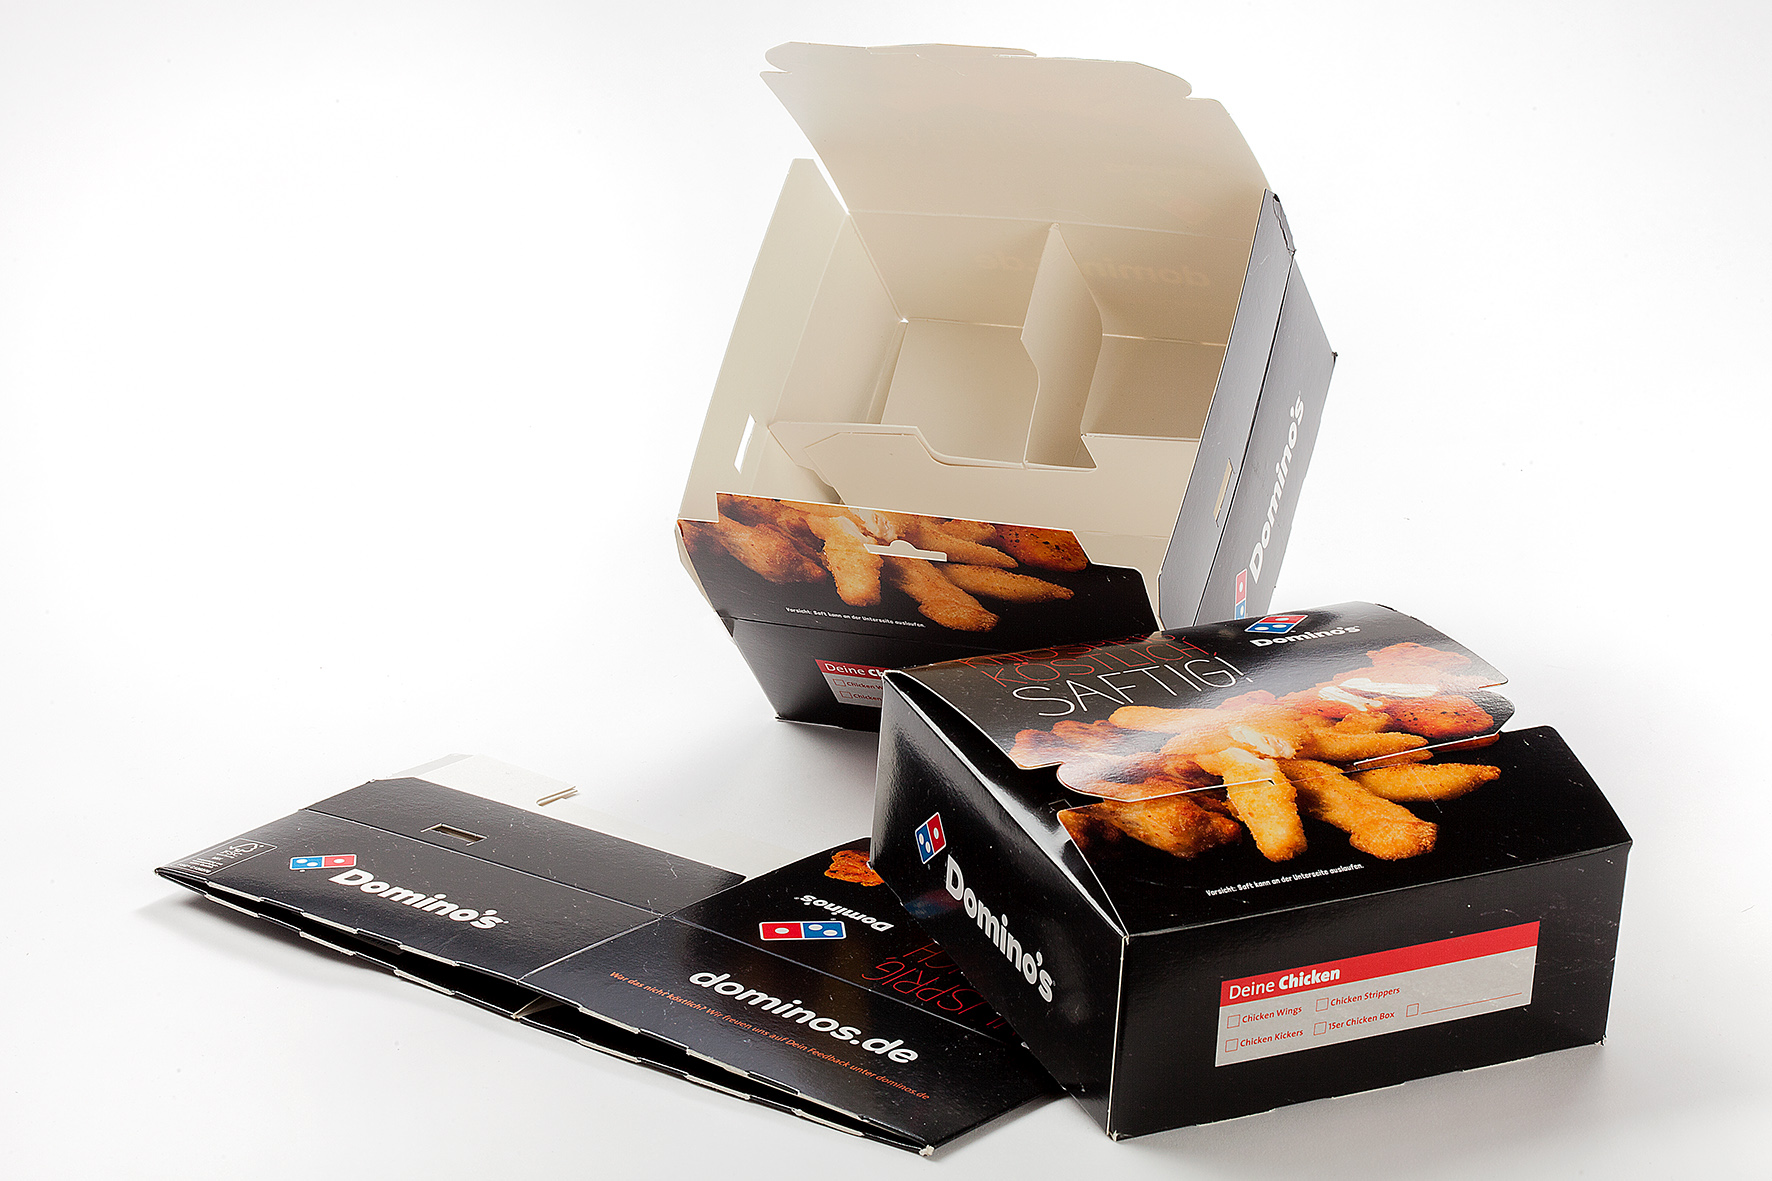 Domino's Chicken Box